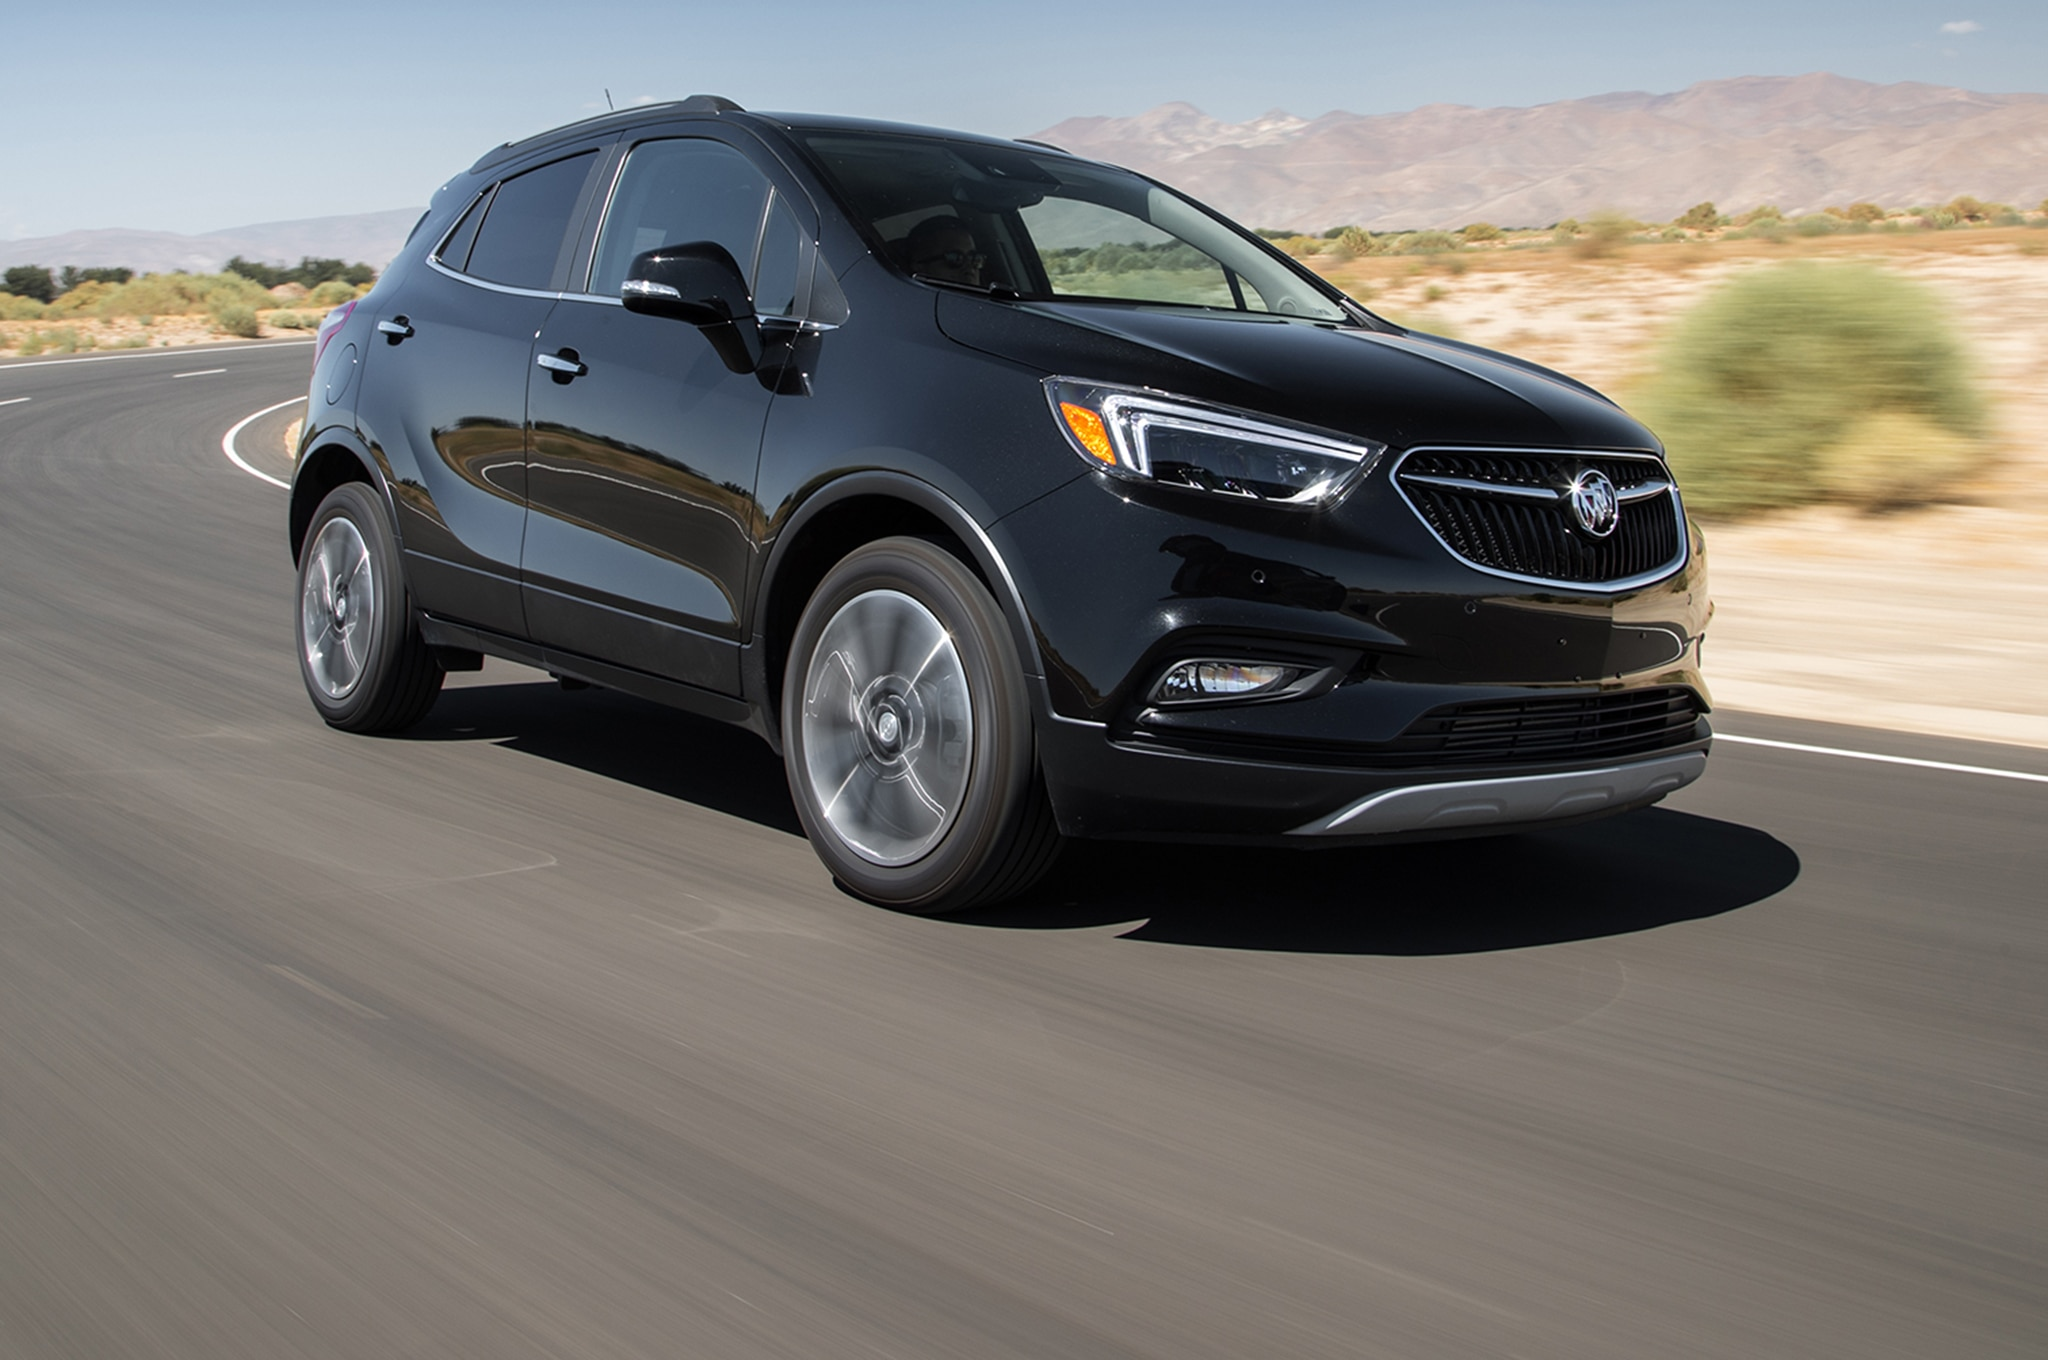 2017 Buick Encore AWD Front Three Quarter In Motion 01